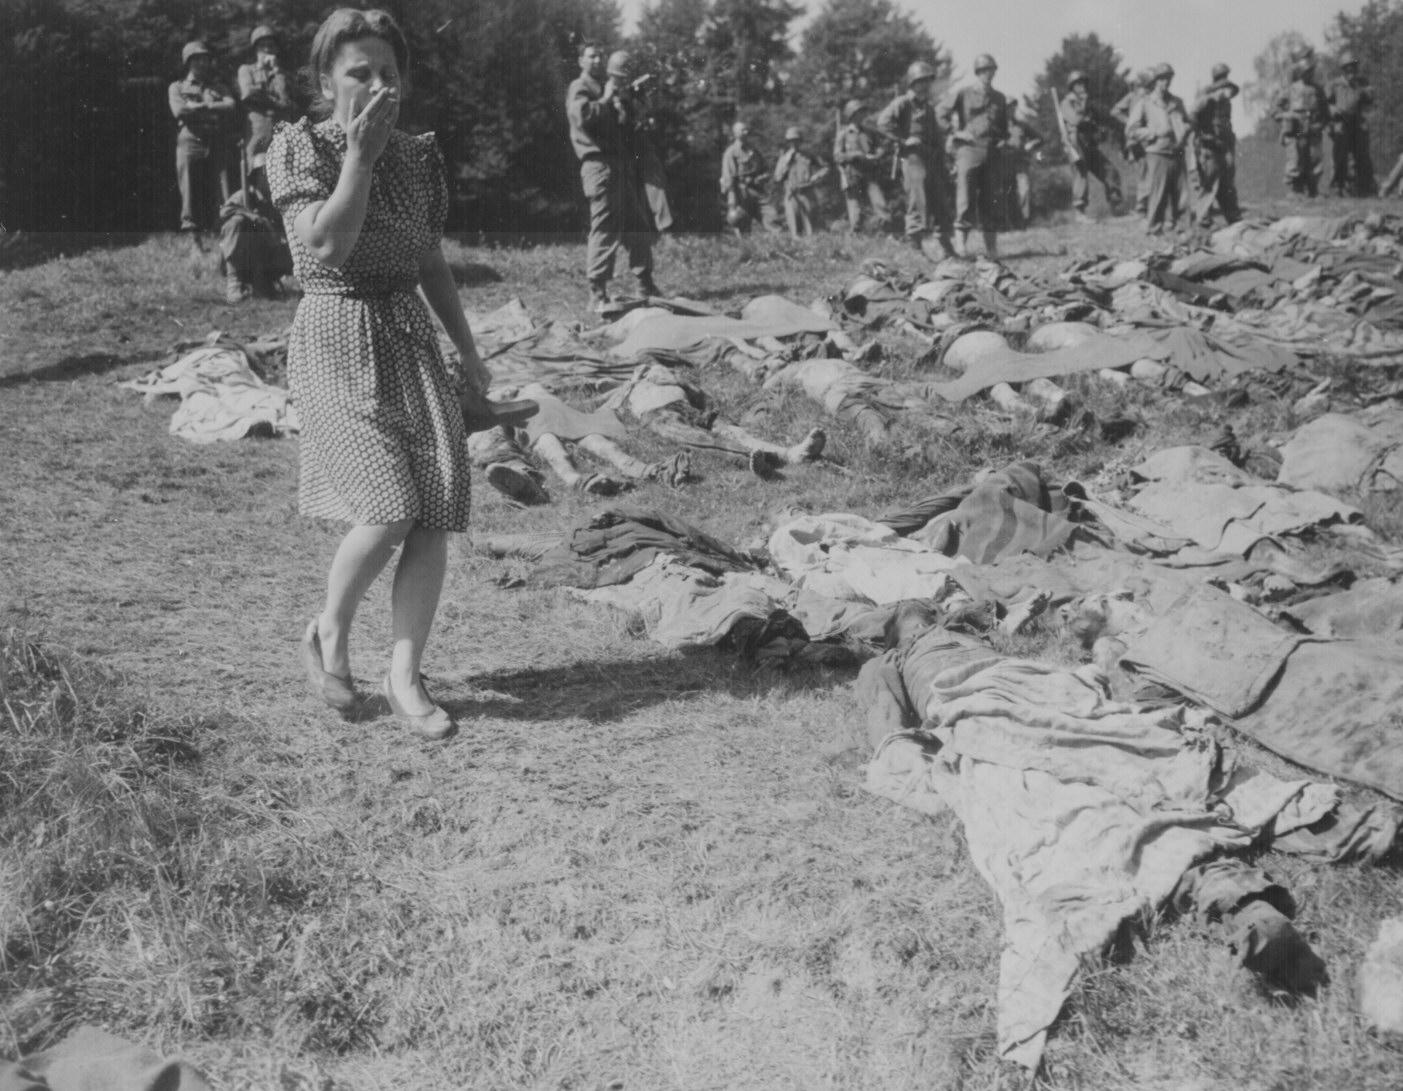 Exhumed Bodies of Holocaust Victims